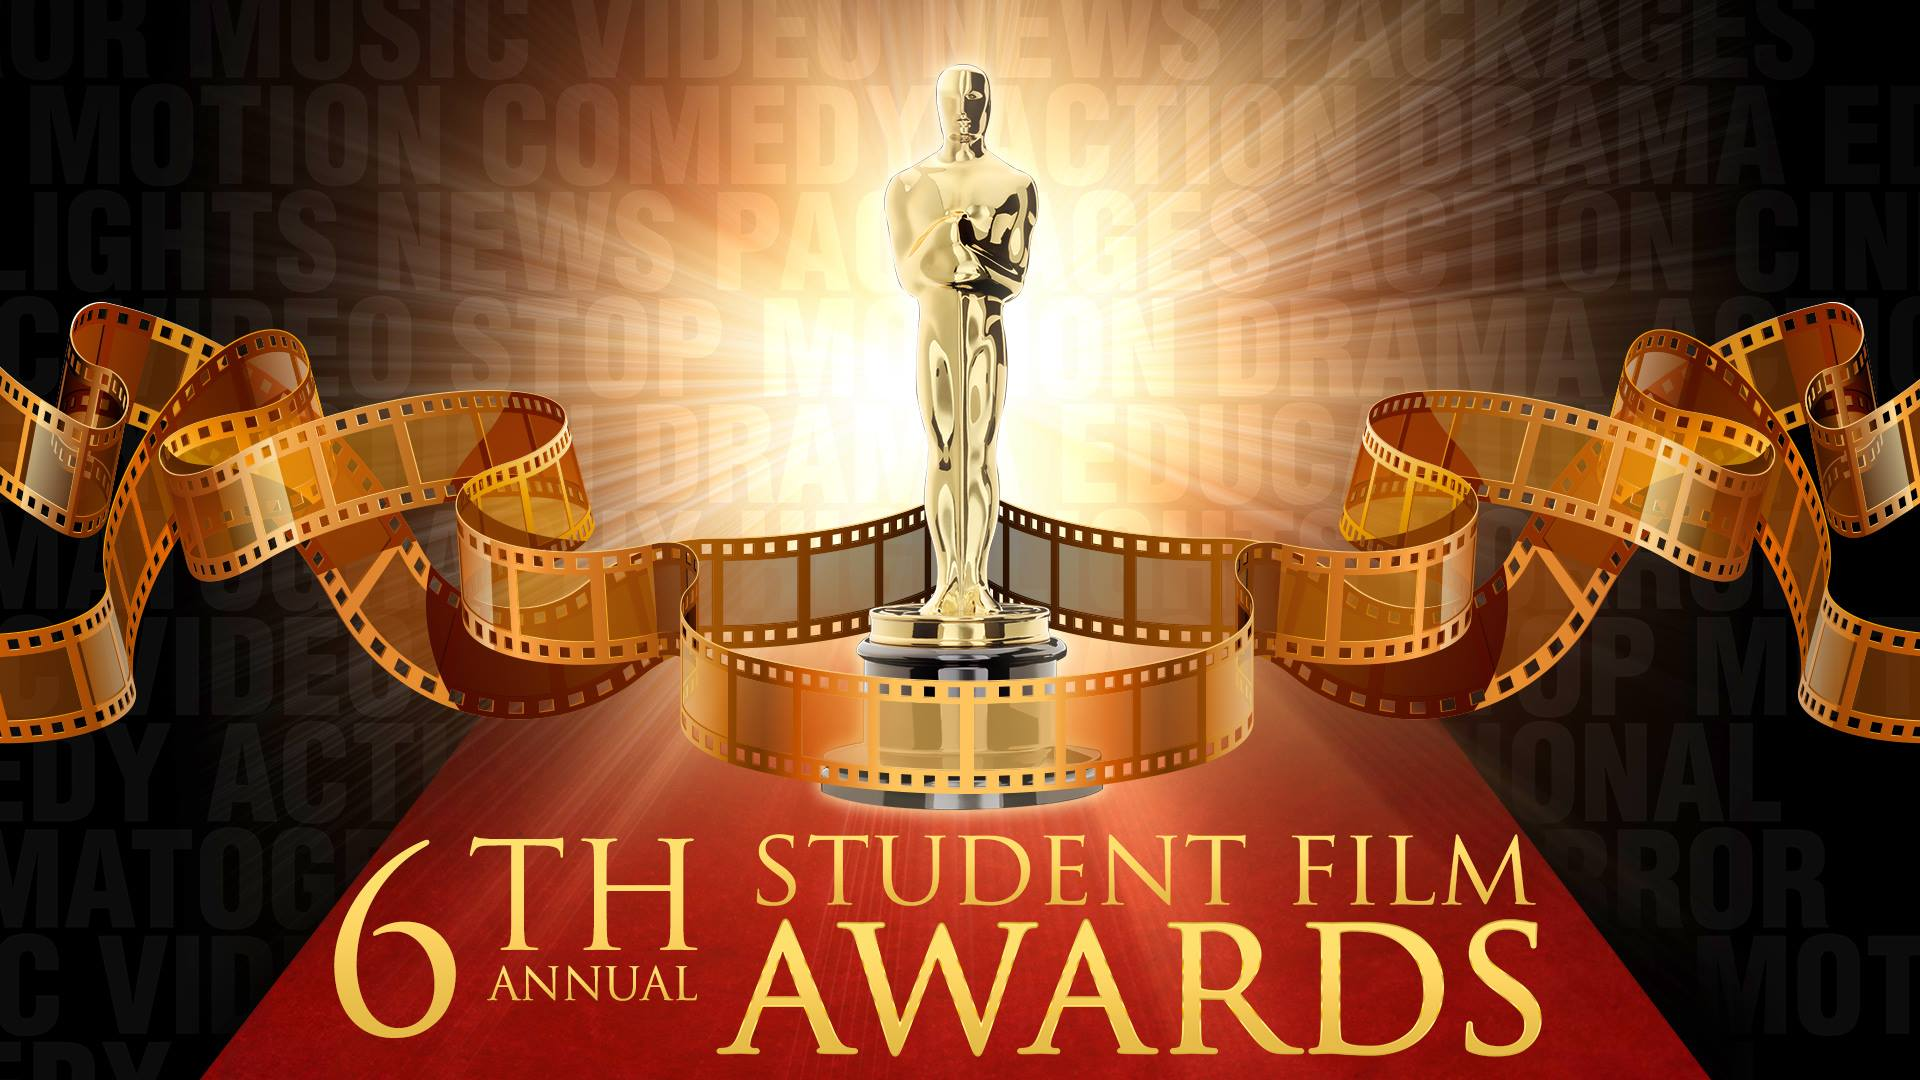 Future filmmakers to be showcased at 2017 Student Film Awards